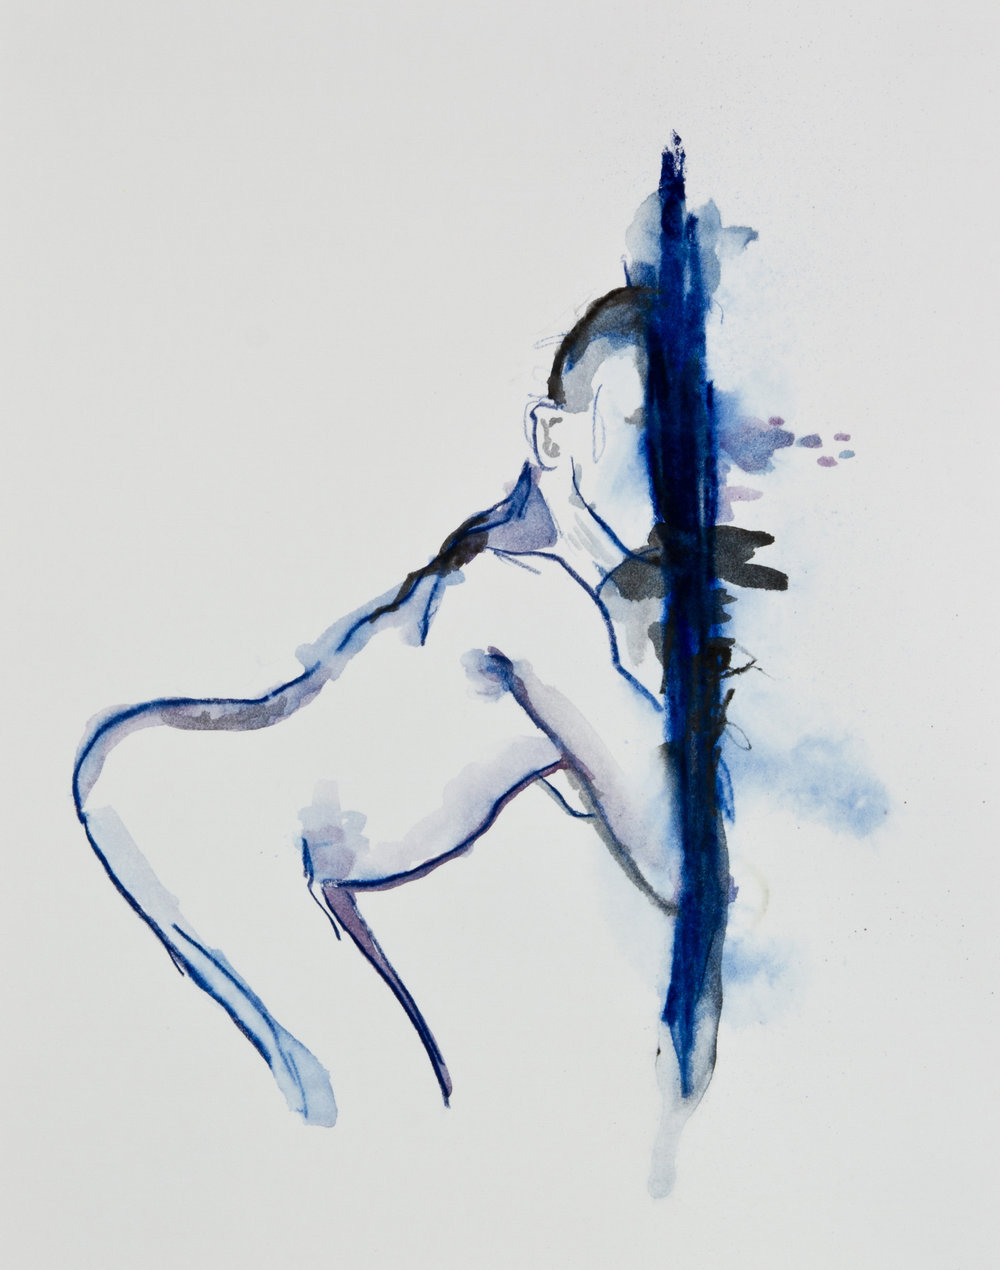 Blue, 2013, graphite, crayon and watercolor pencil on paper, 11x14 inches